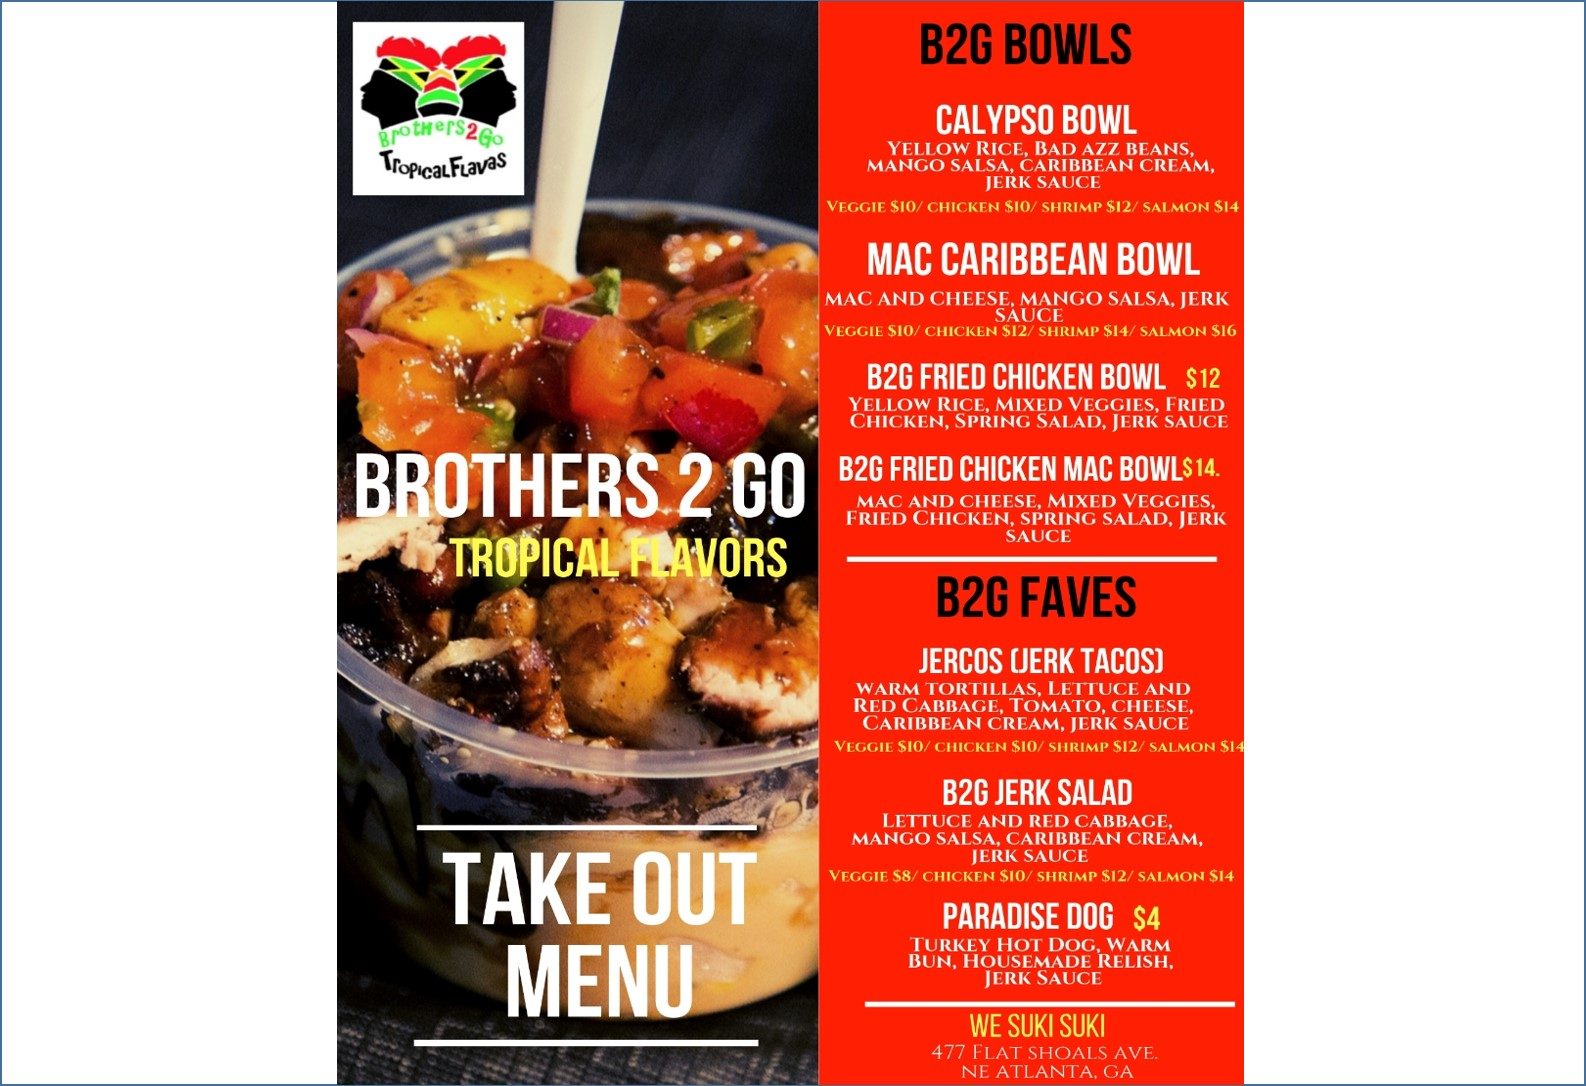 BROTHERS 2 GO TAKE OUT MENU